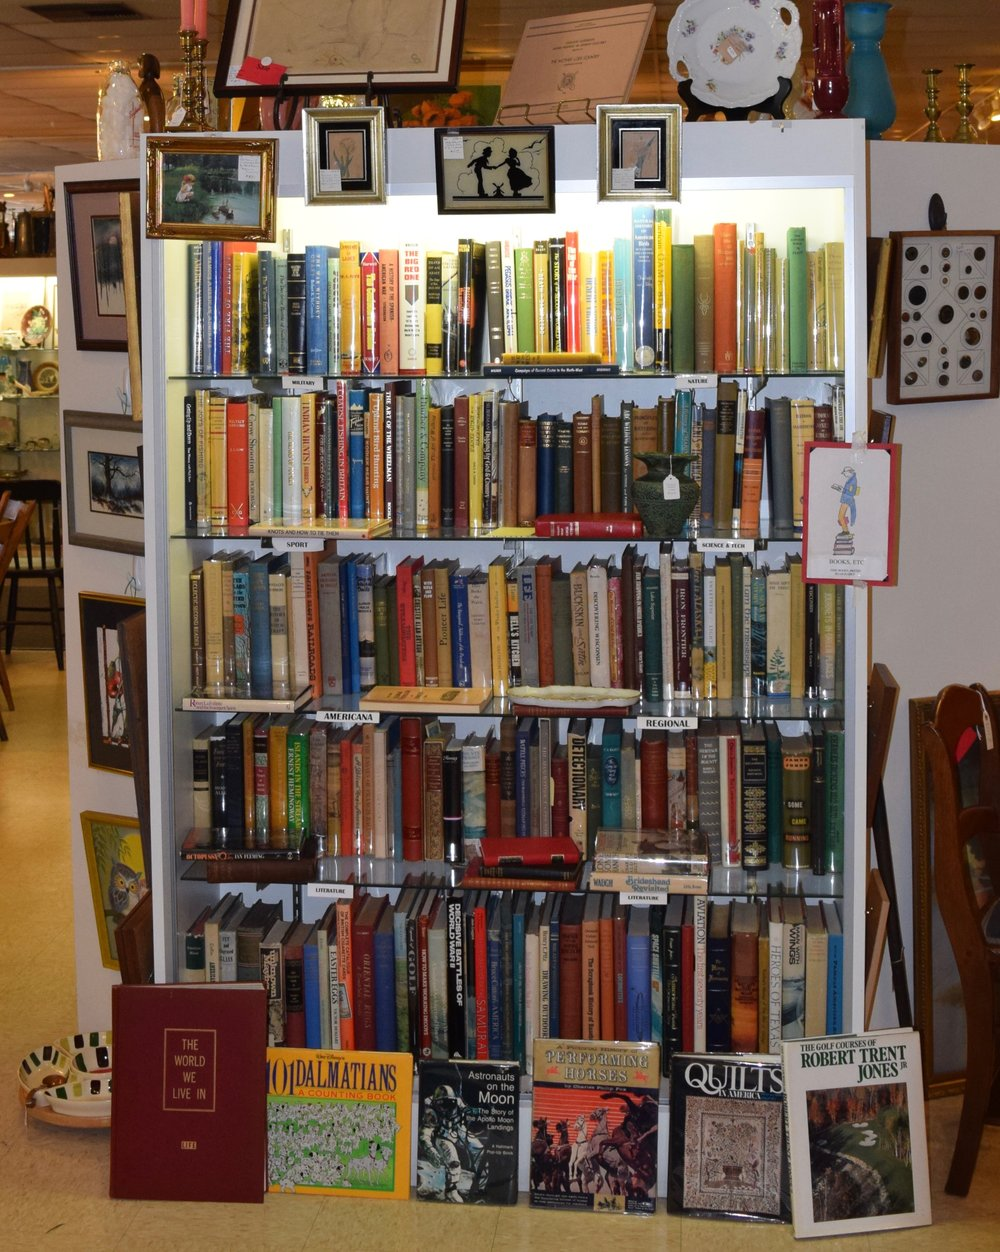 Wonderful Assortment of Unique Books